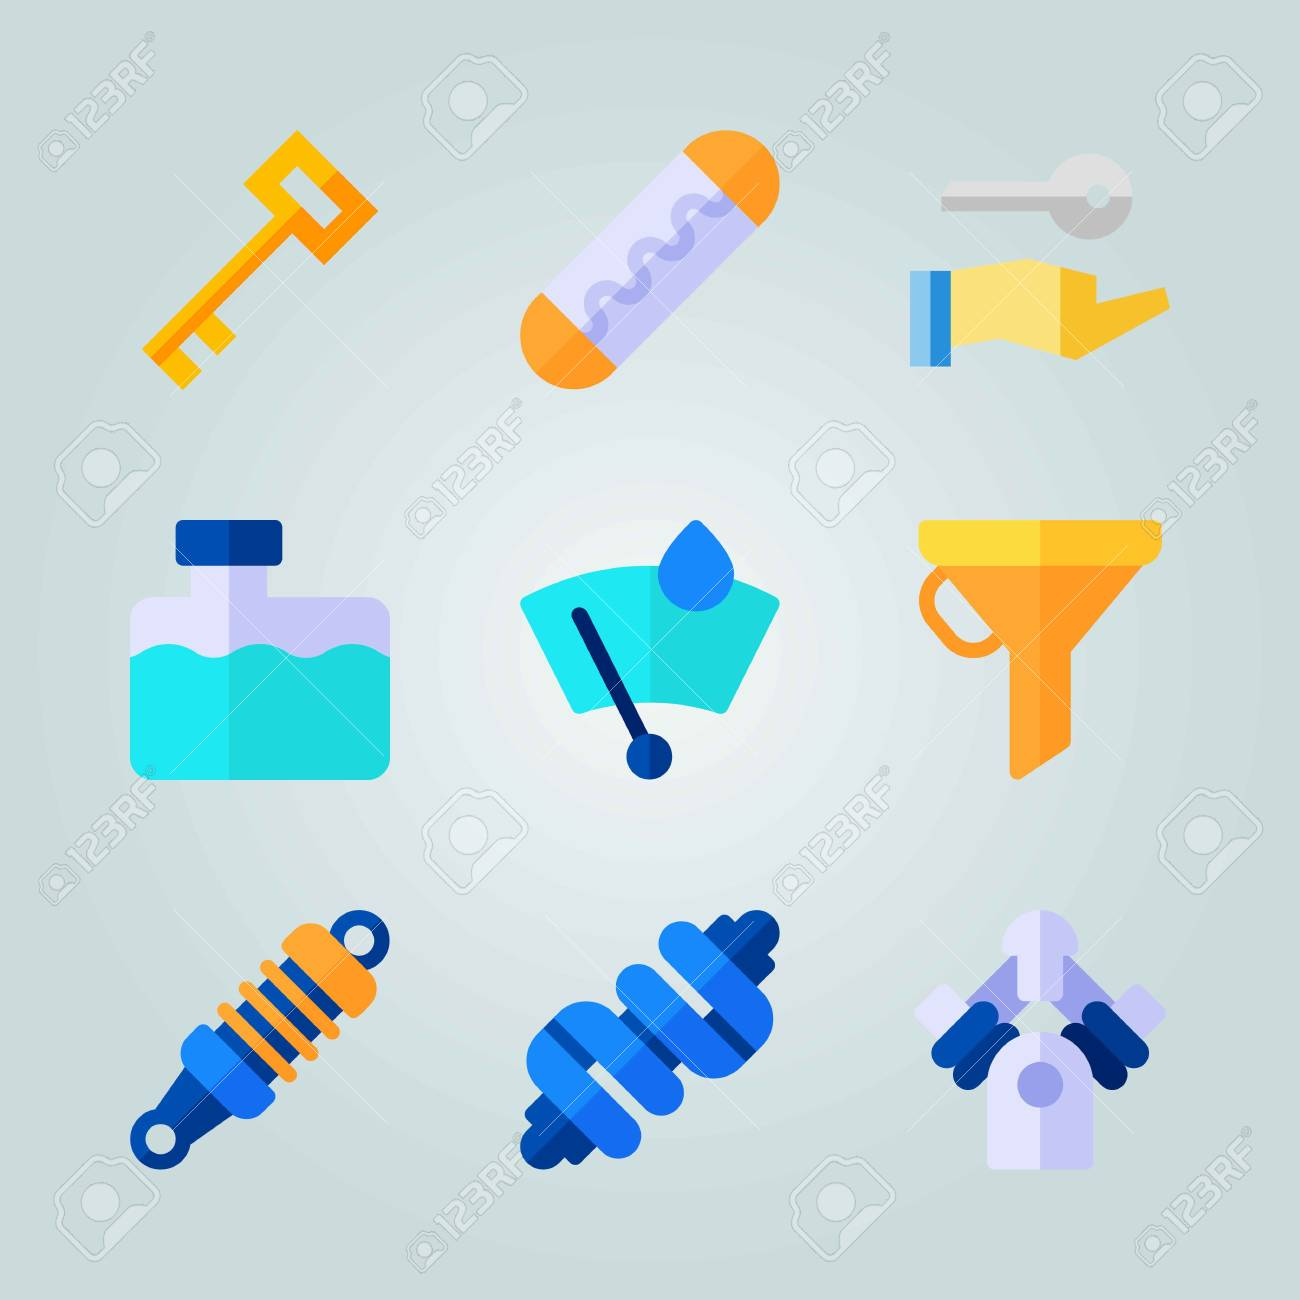 icon set about car engine with water box, windshield and crankshaft stock  vector - 94709905